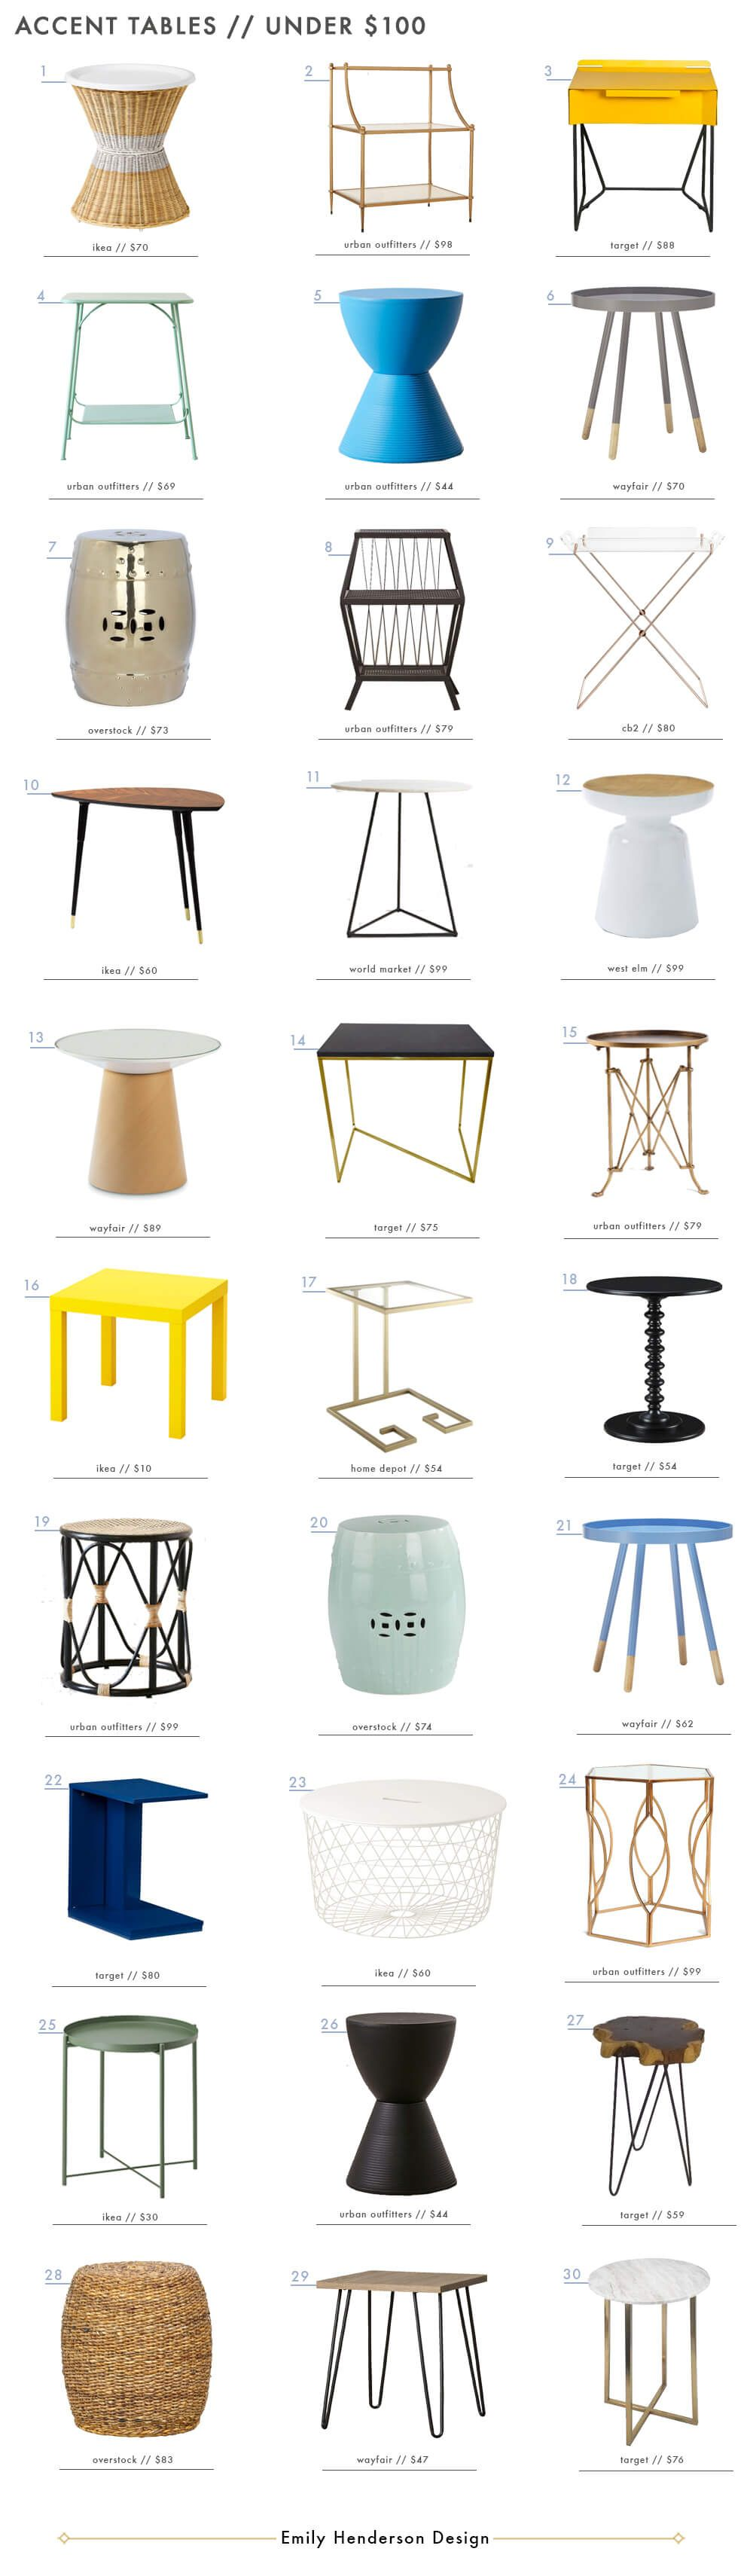 Best 30 Accent Tables Under 100 Affordable Home Decor 400 x 300